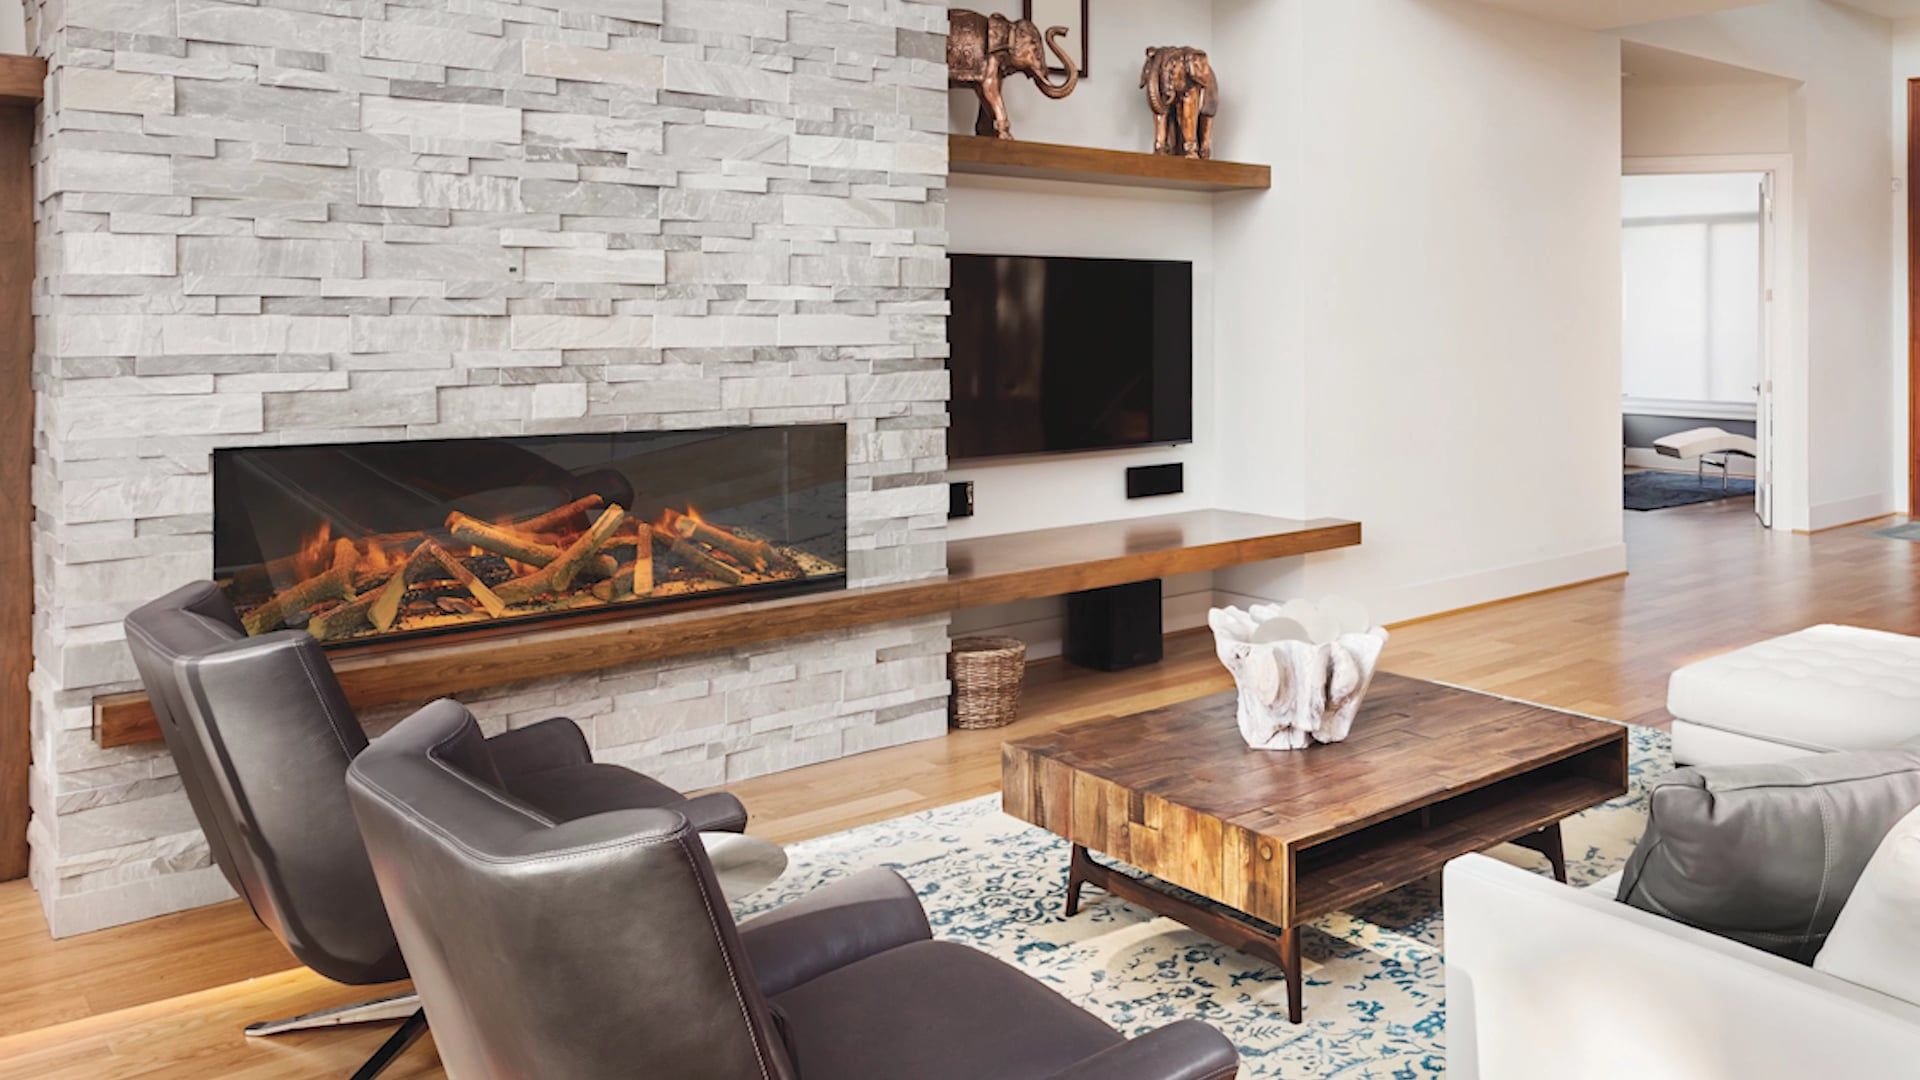 Pin On Living Room Decor Fireplace